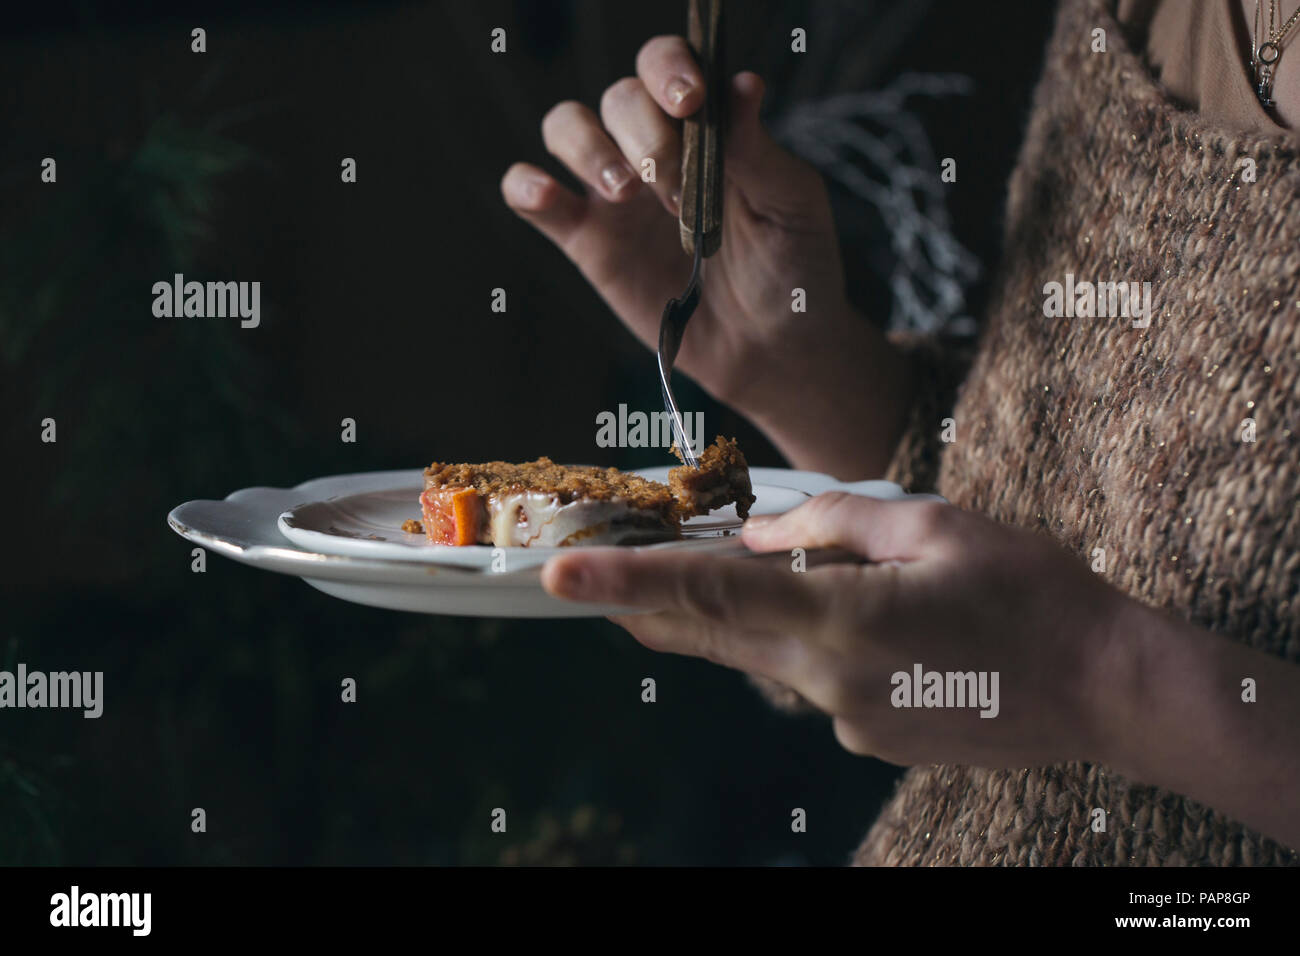 Woman eating home-baked Christmas cake, partial view - Stock Image